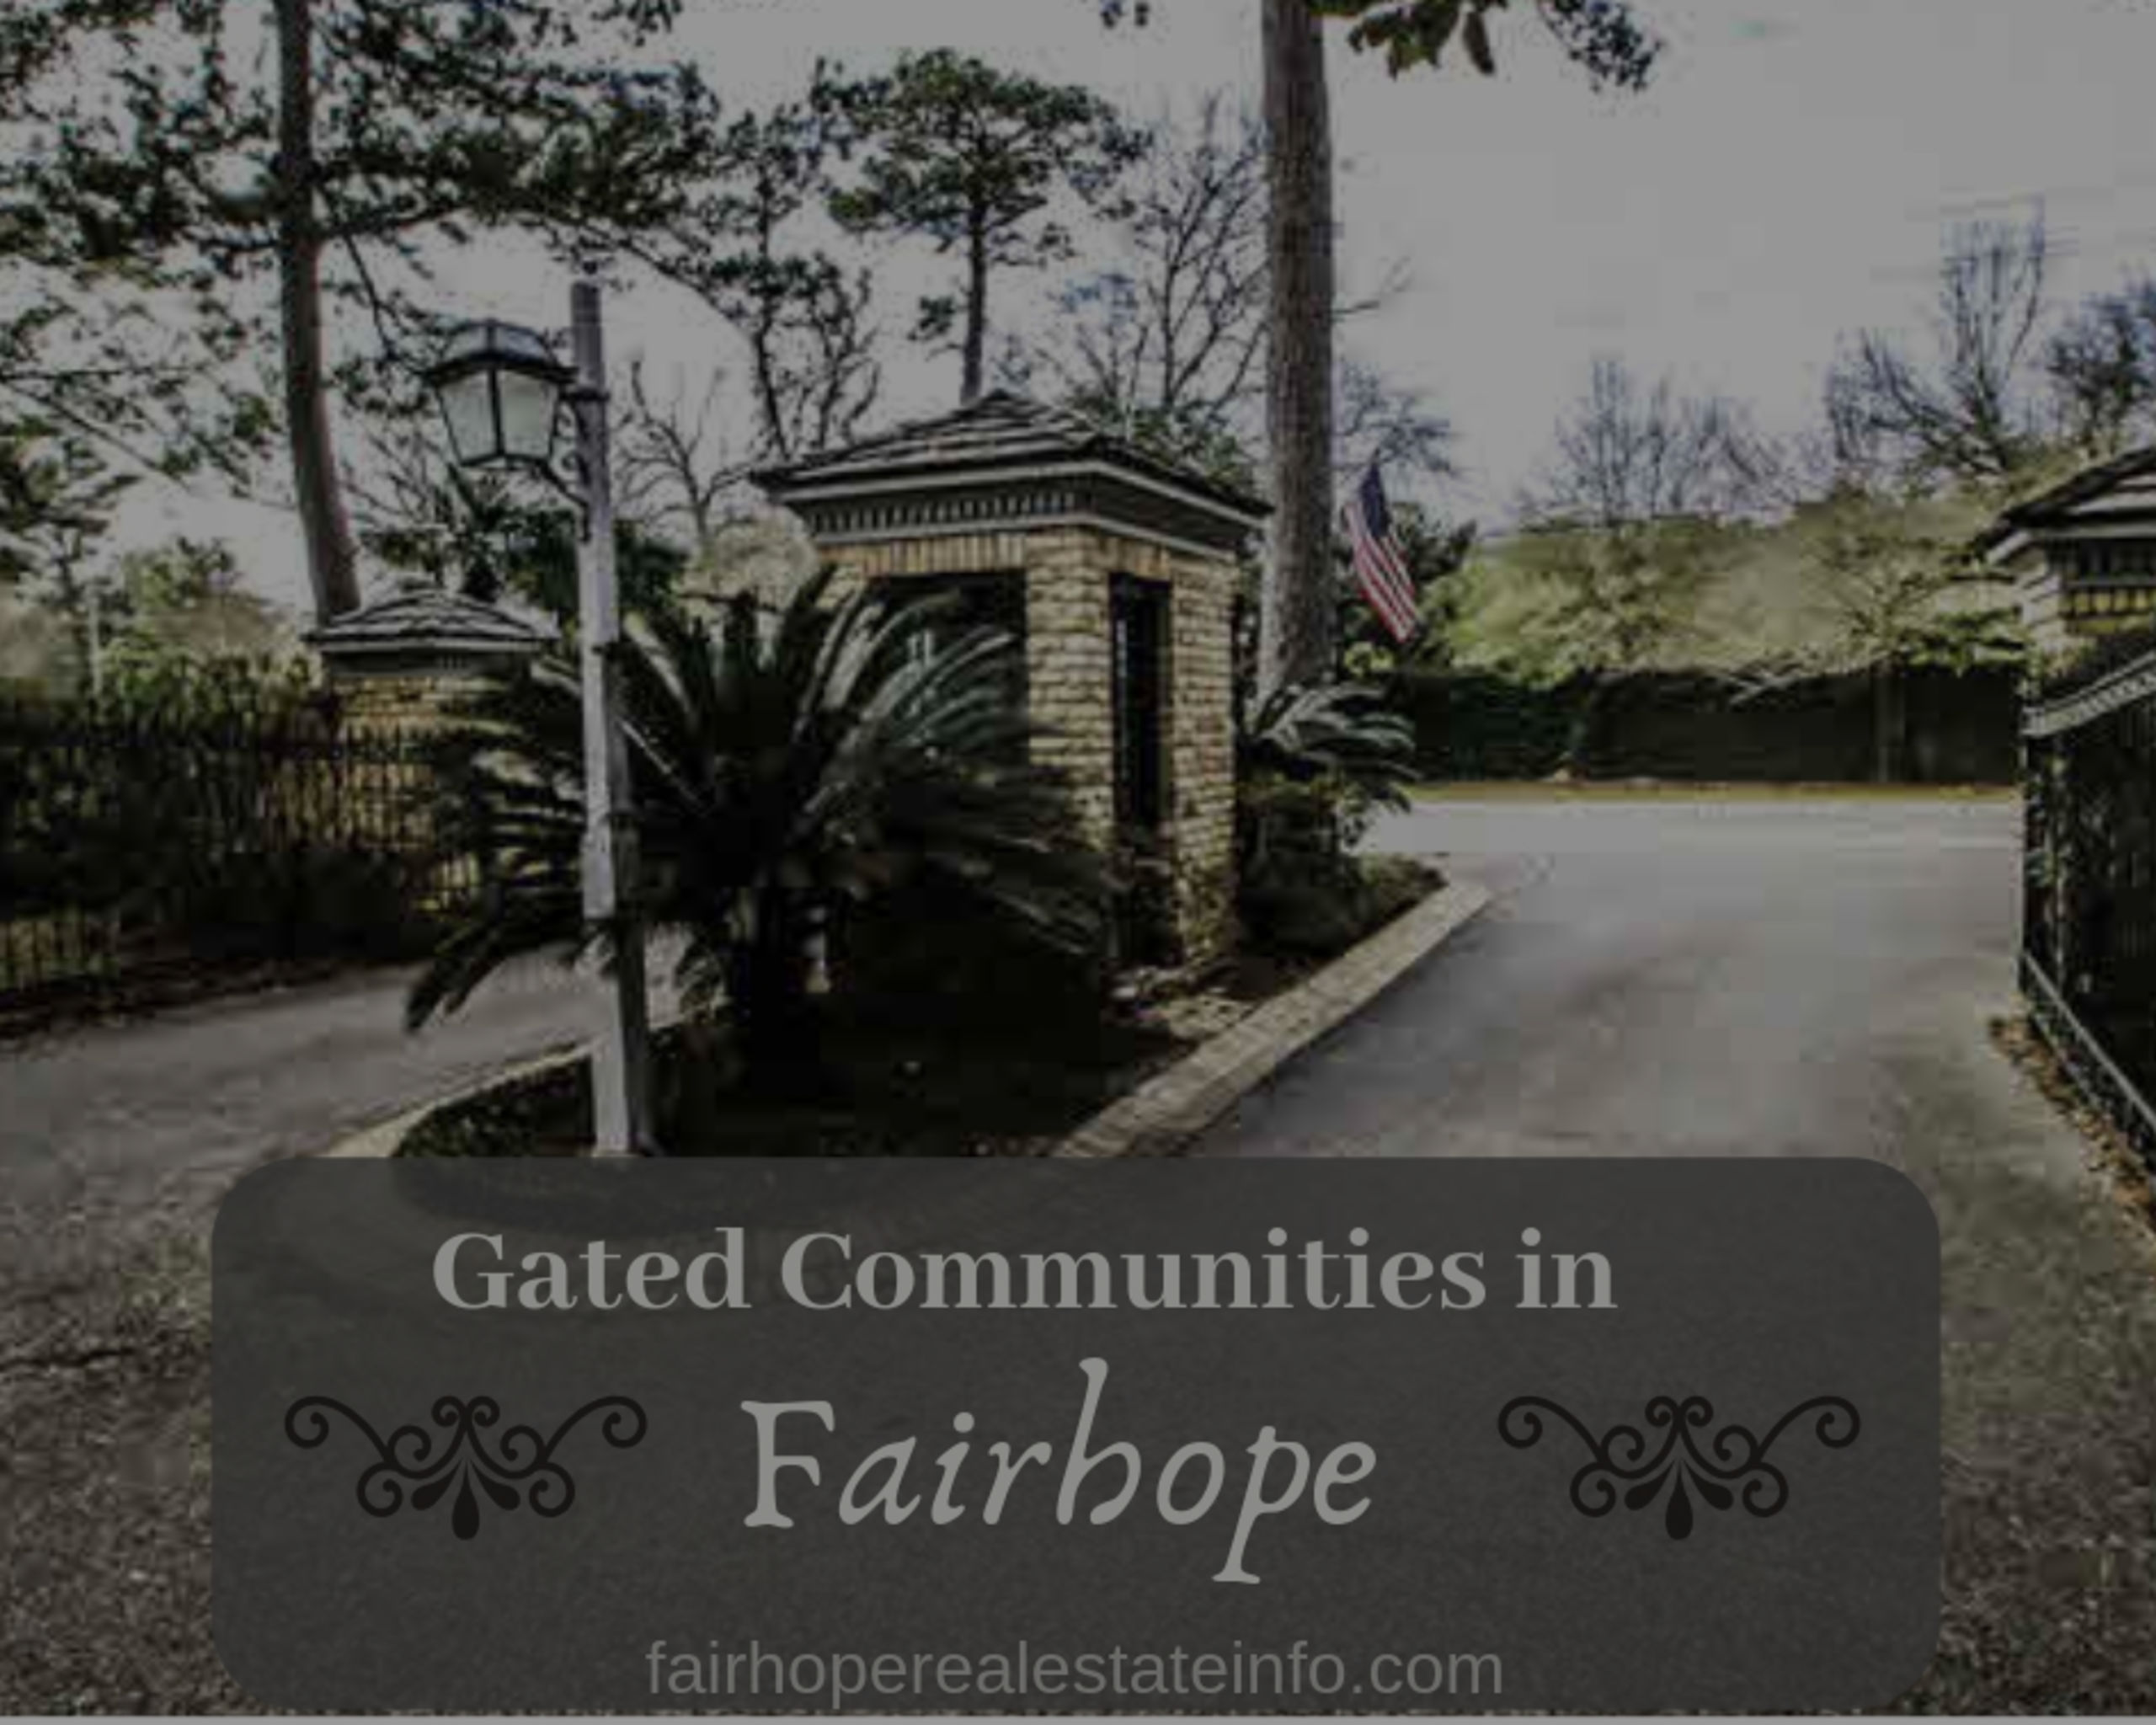 Gated Communities in Fairhope